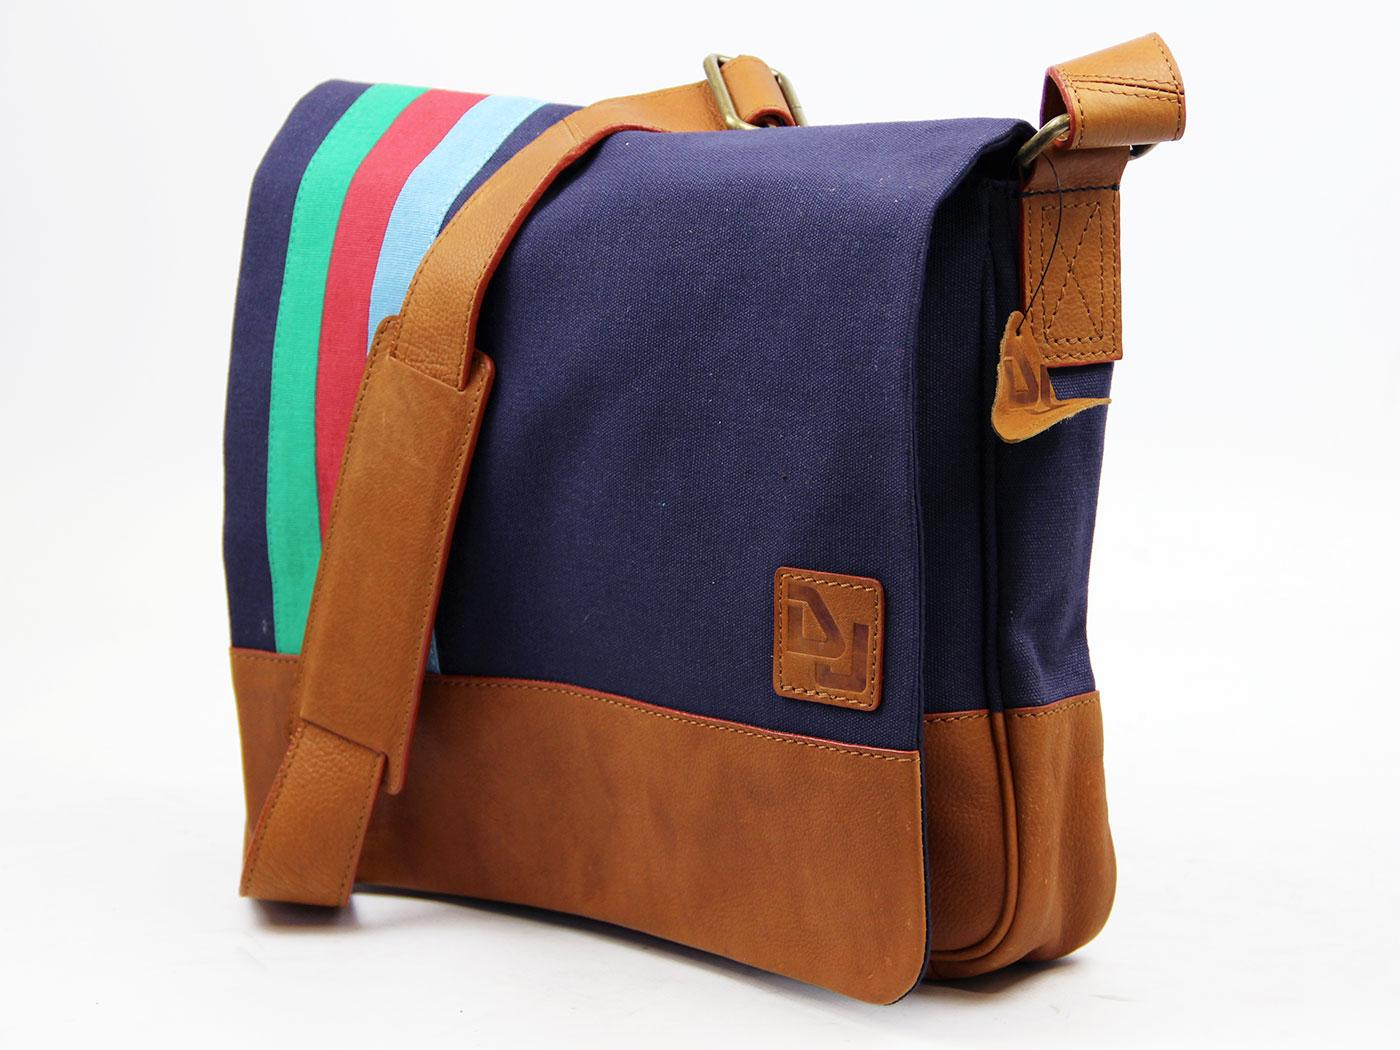 DELICIOUS JUNCTION Retro Mod Canvas Stripe Bag (N)